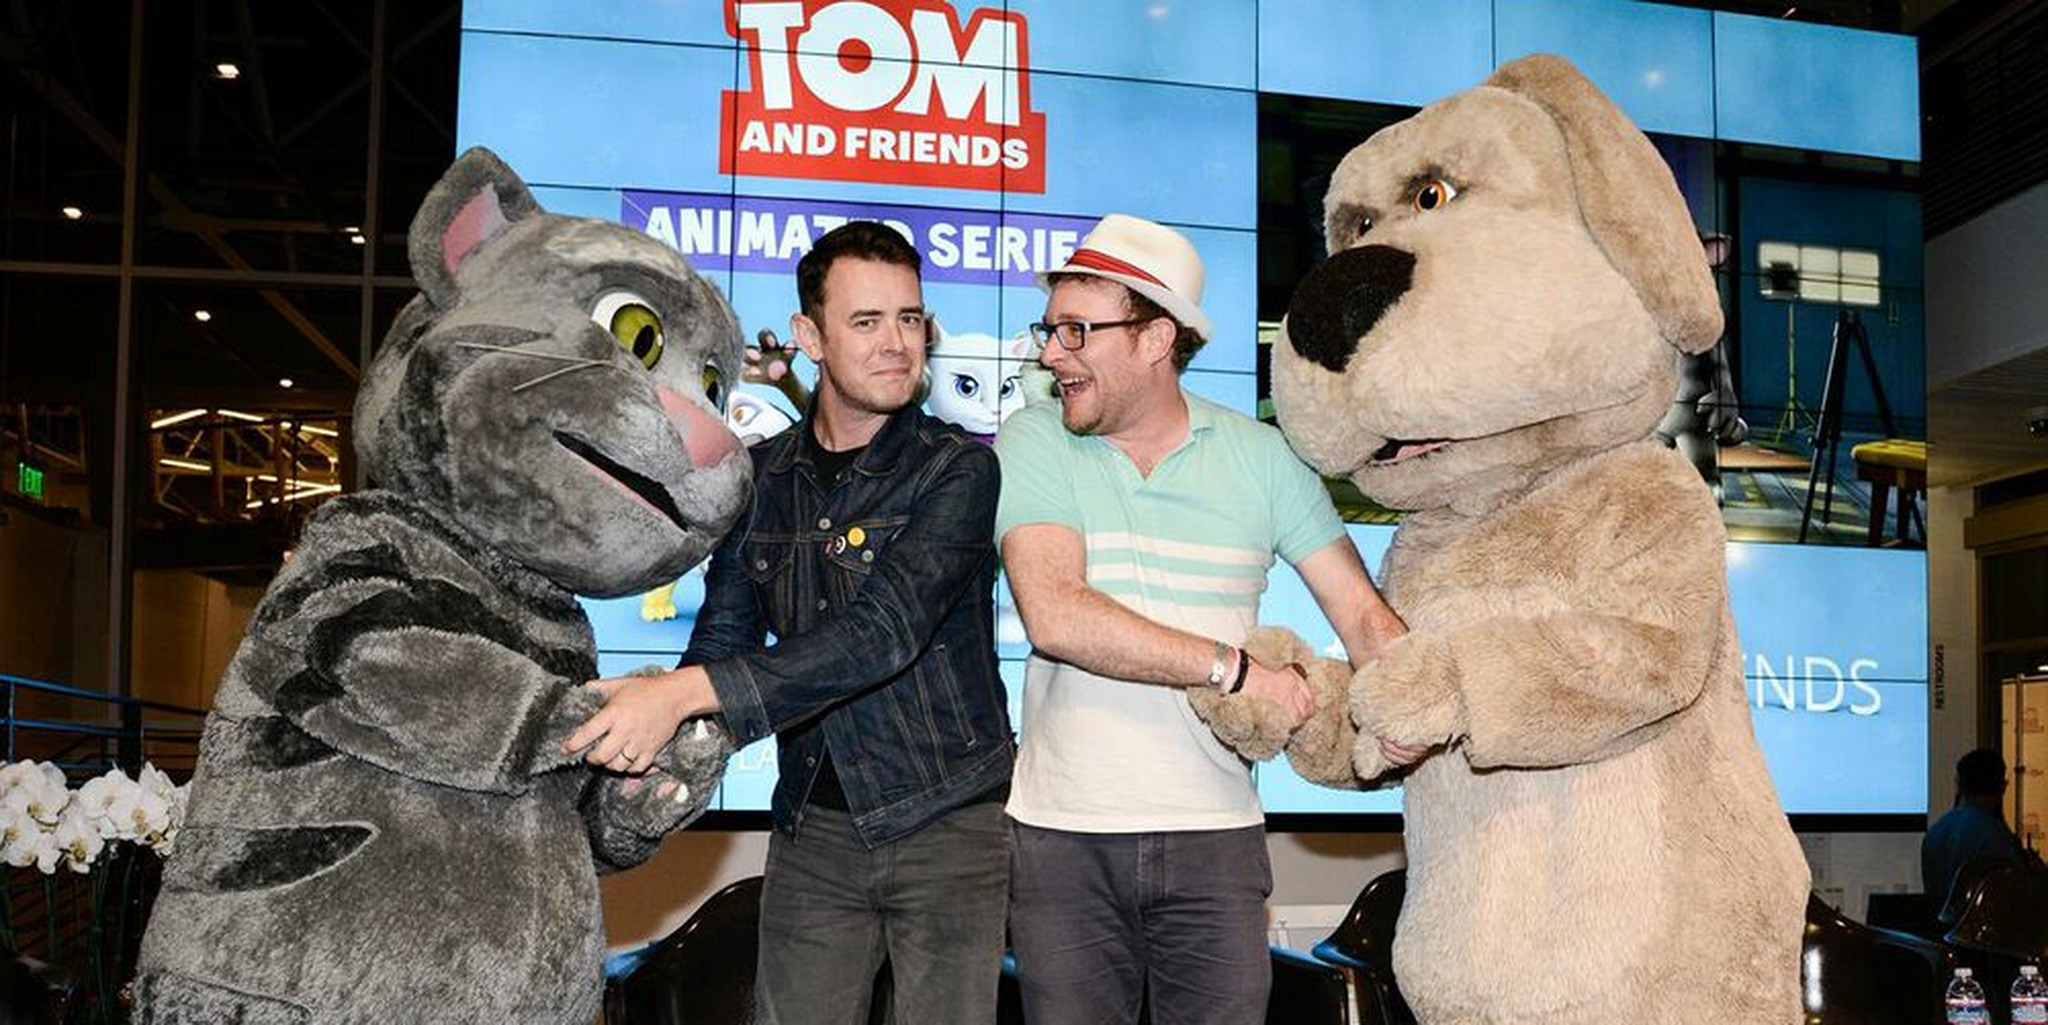 Voice actors from talking tom meet their animal counterparts